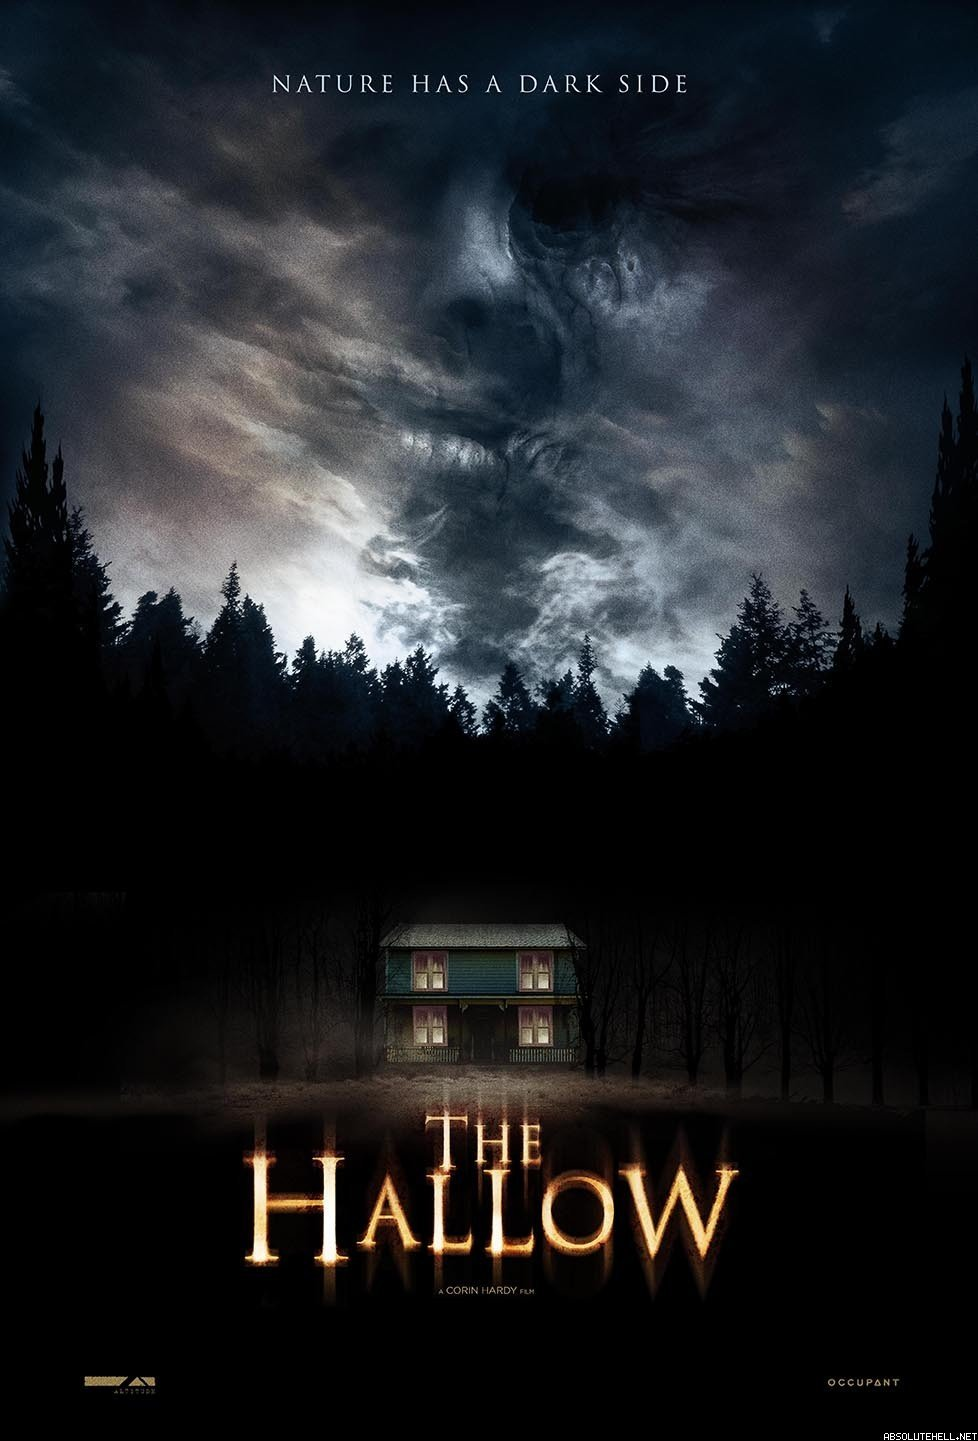 The Hallow Poster - HeadStuff.org